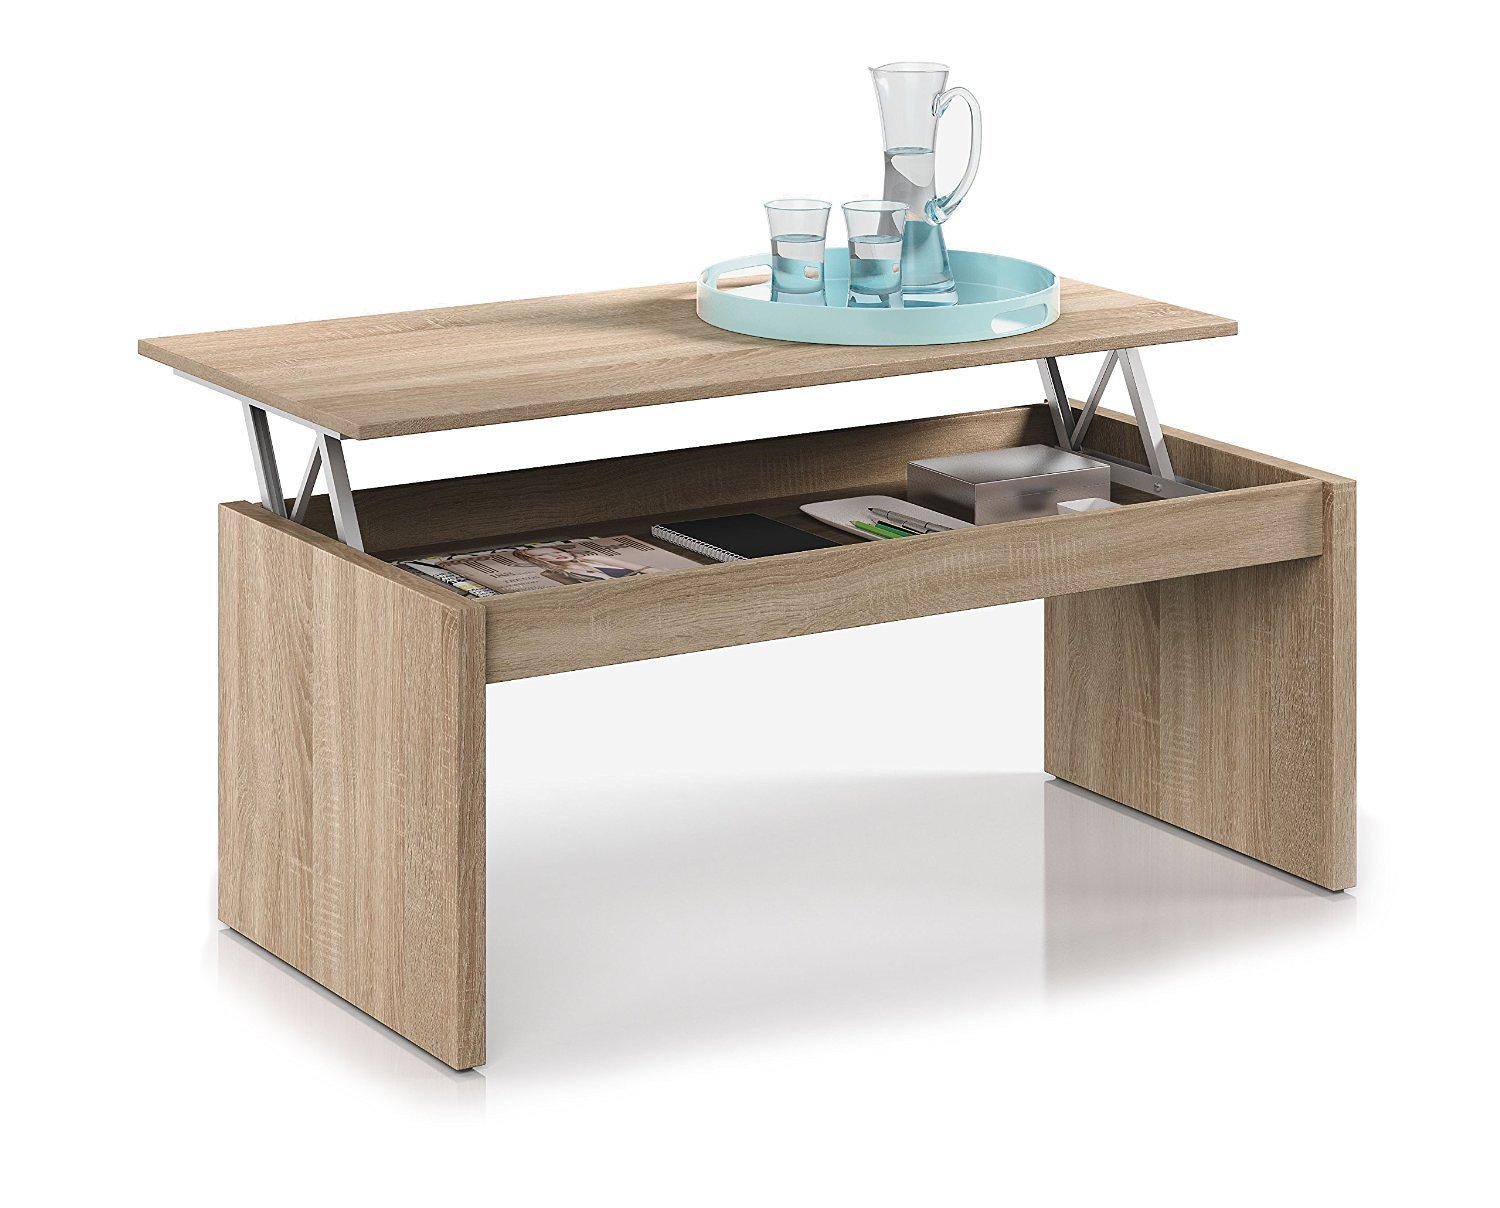 Fabulous habitdesign f table basse chne naturel avec - Petite table basse relevable ...